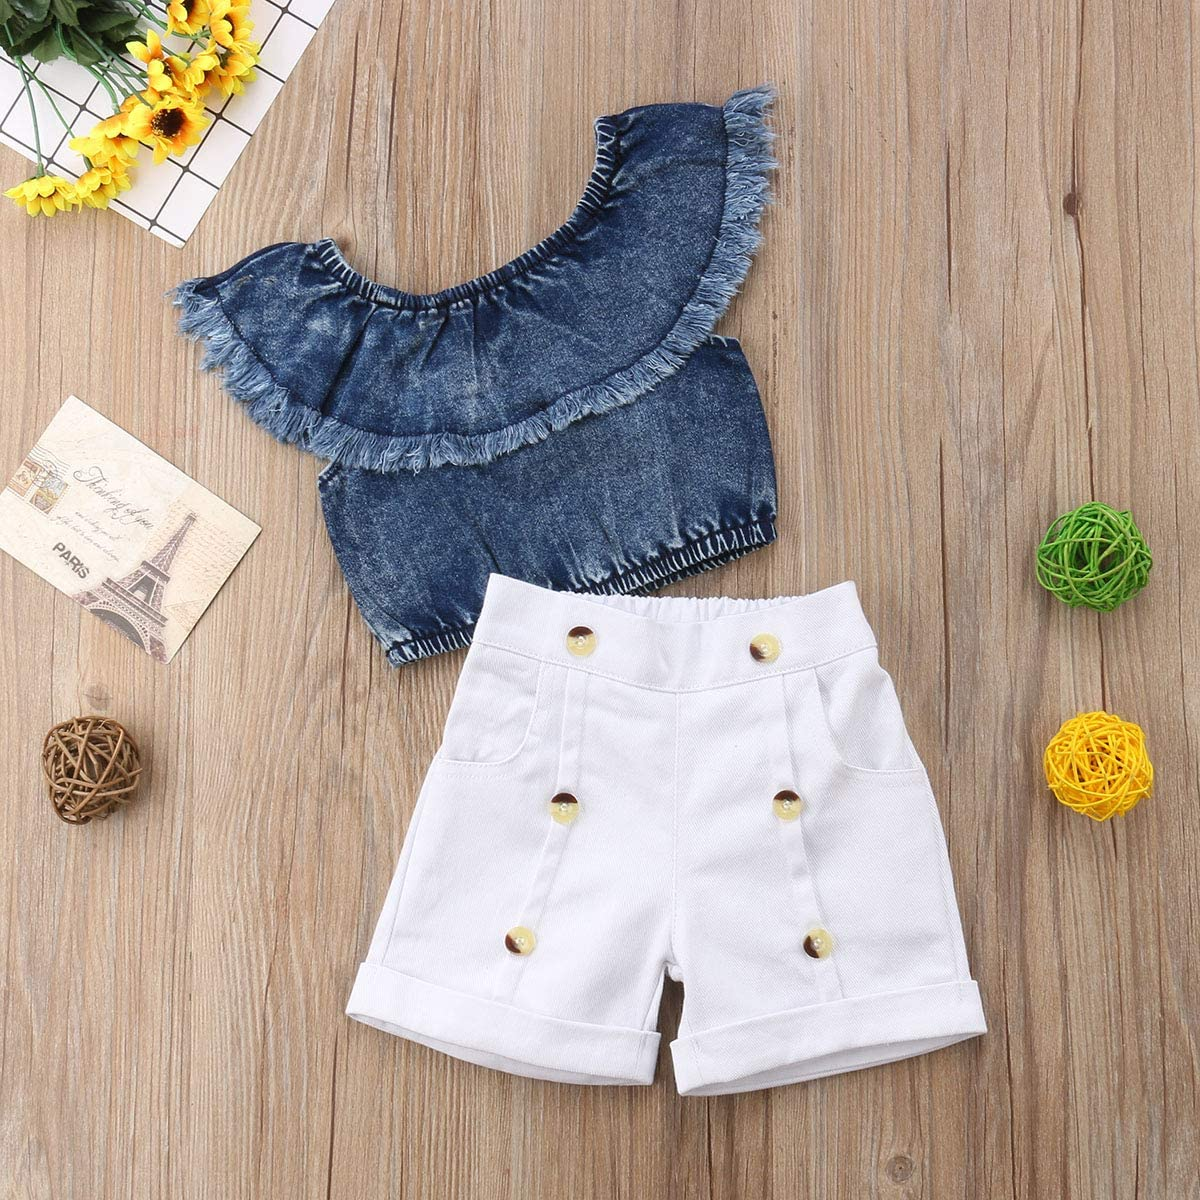 Button Shorts Pants Outfits Set Baby Kids Girls Off Shoulder Ruffle Top Sleeveless Denim Tank Top